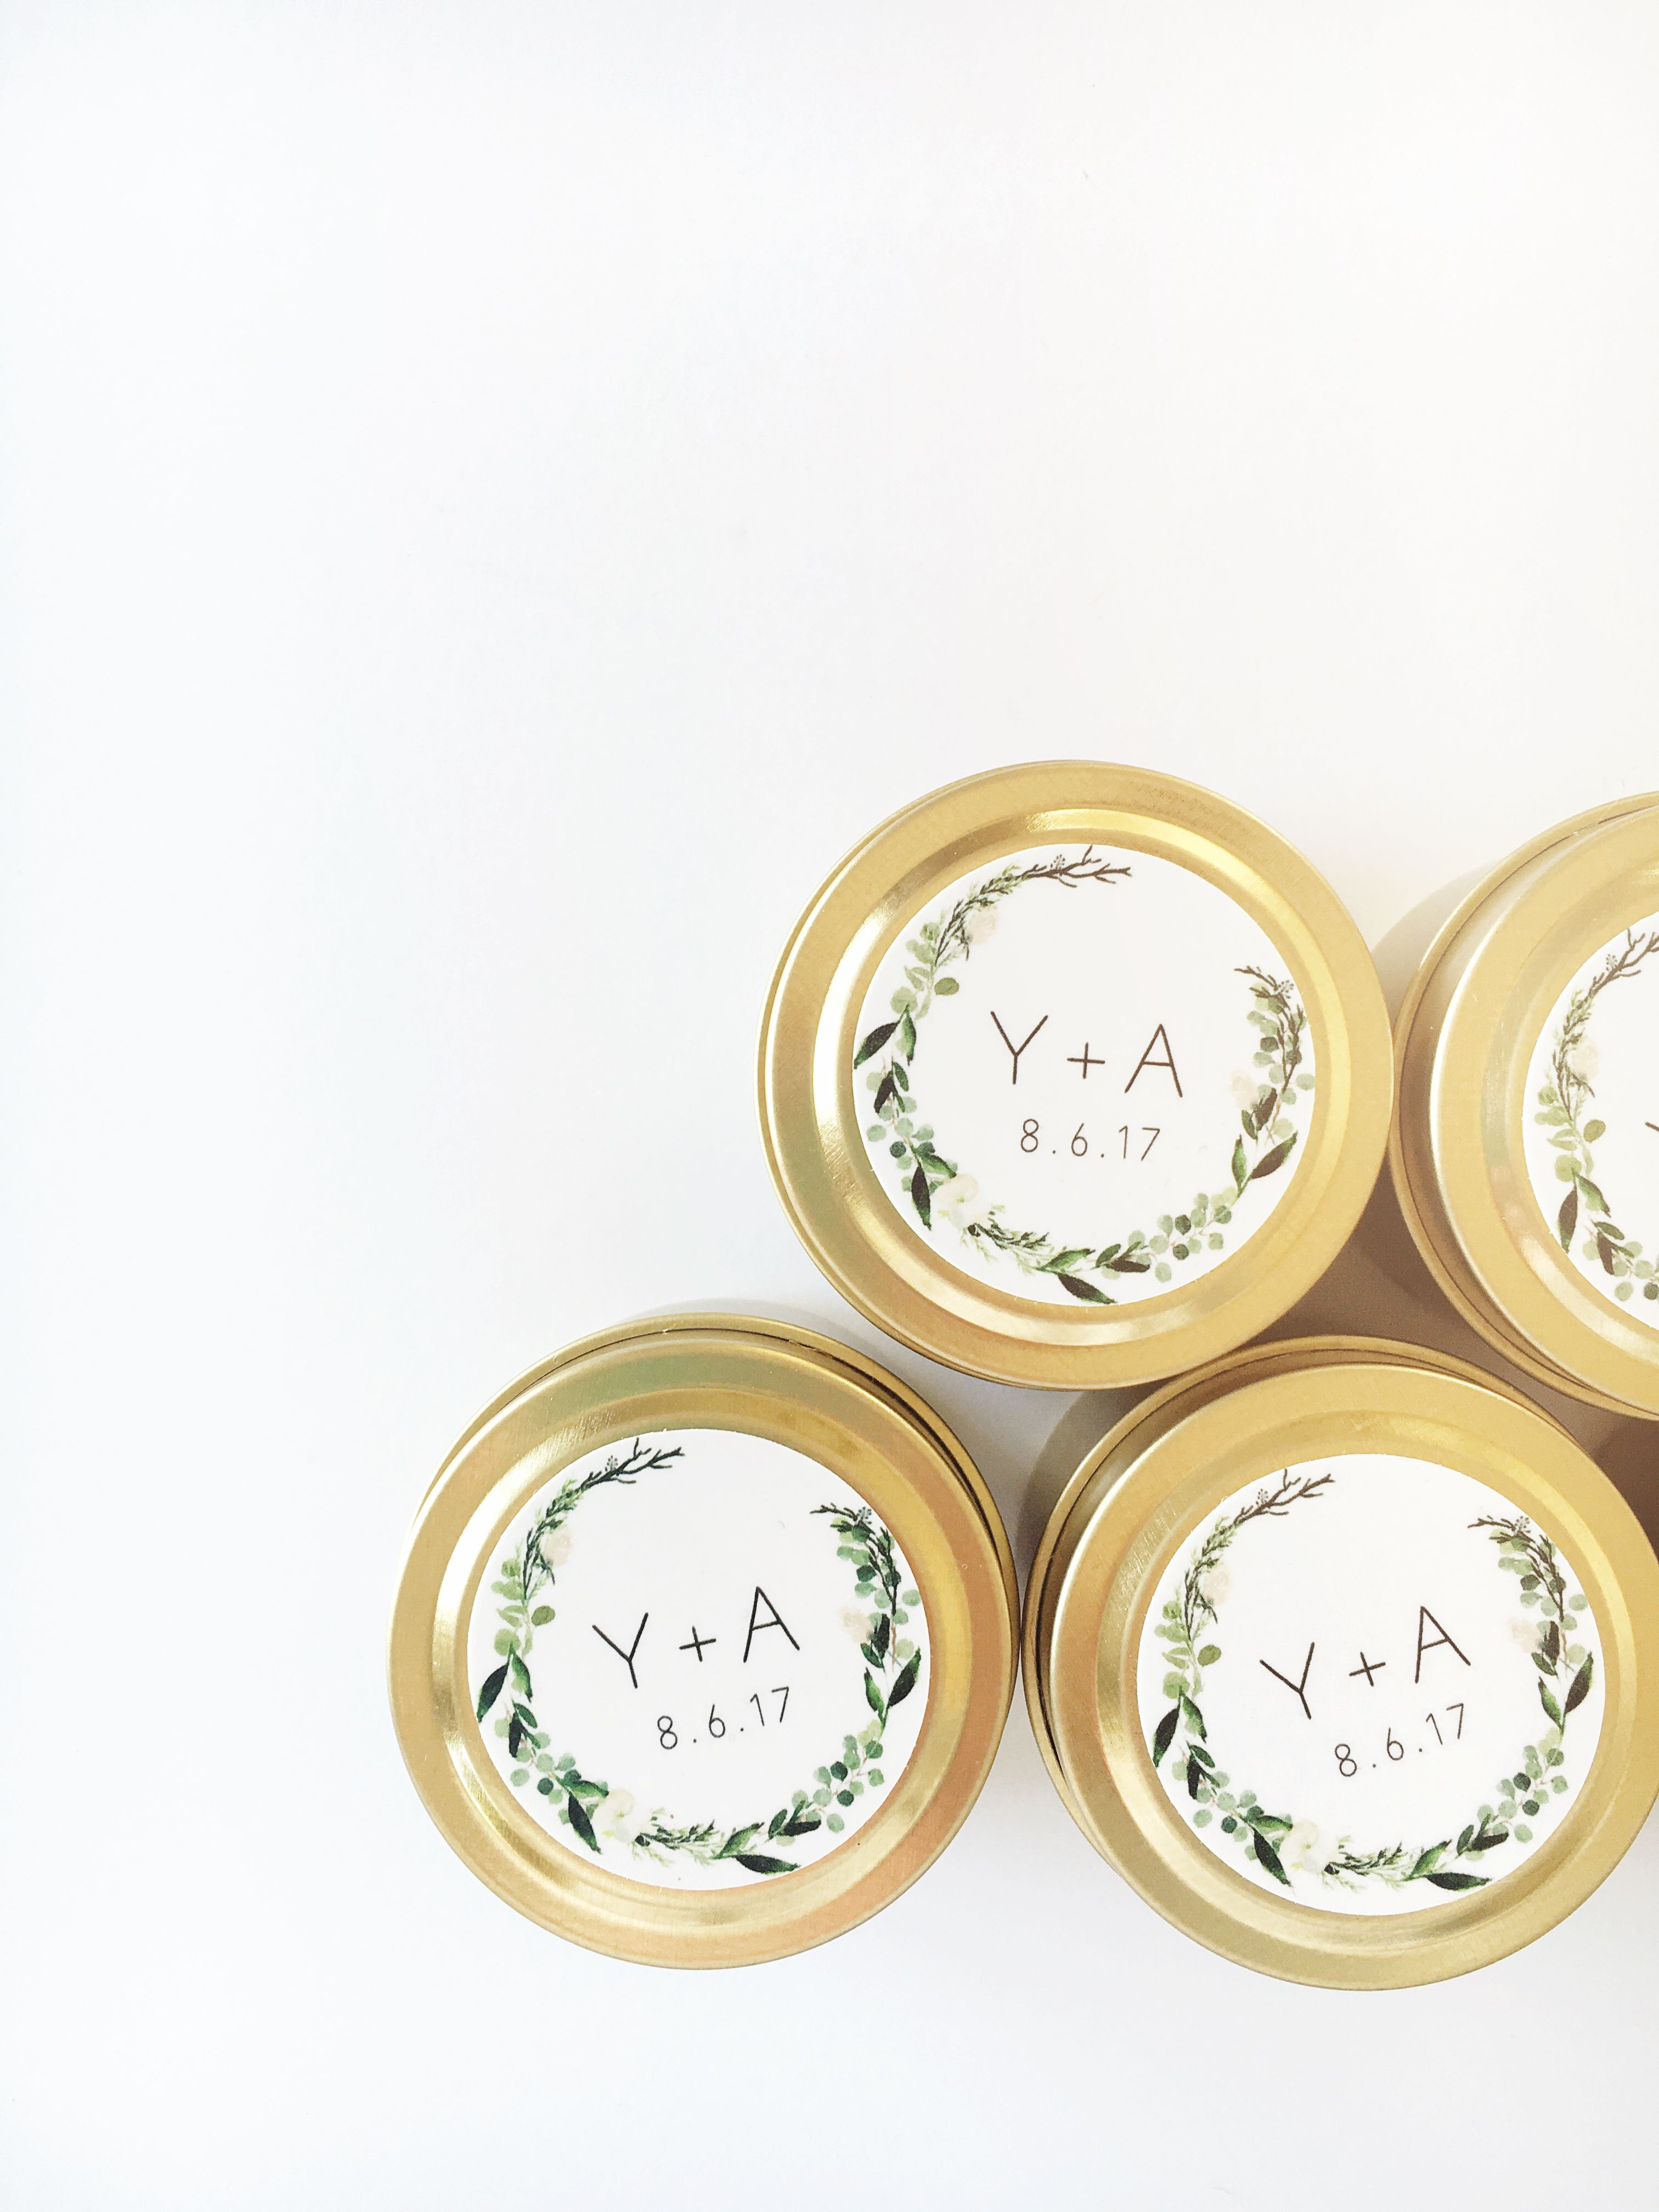 Personalized Candles for Wedding Favors | Giftwedding.co